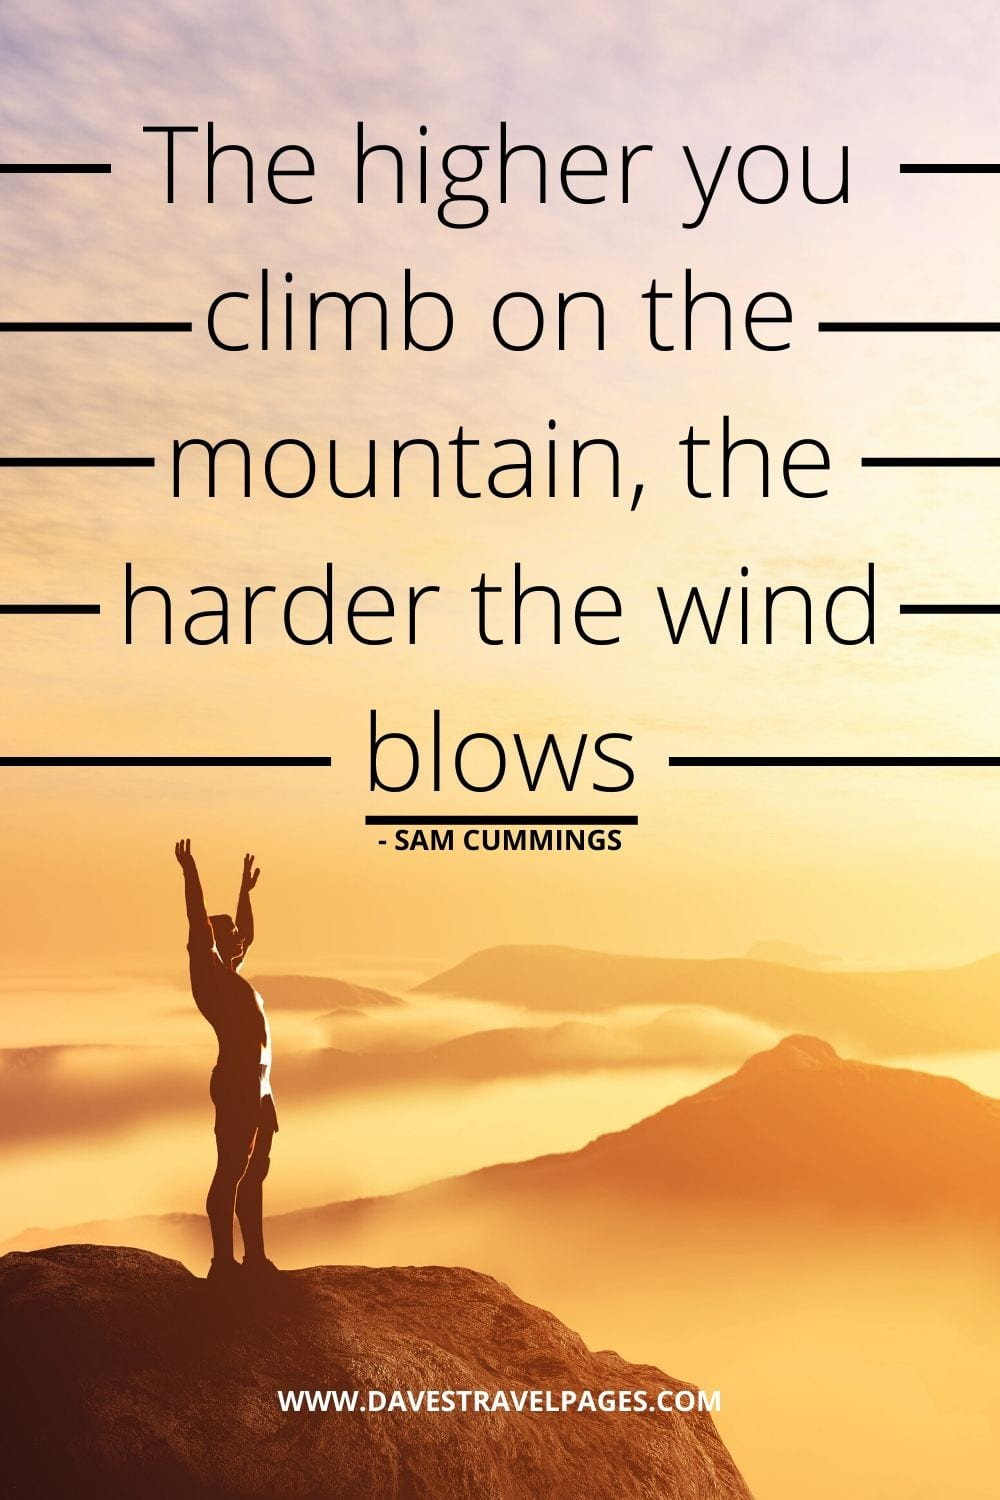 Mountain Climbing Quotes: The higher you climb on the mountain, the harder the wind blows - Sam Cummings